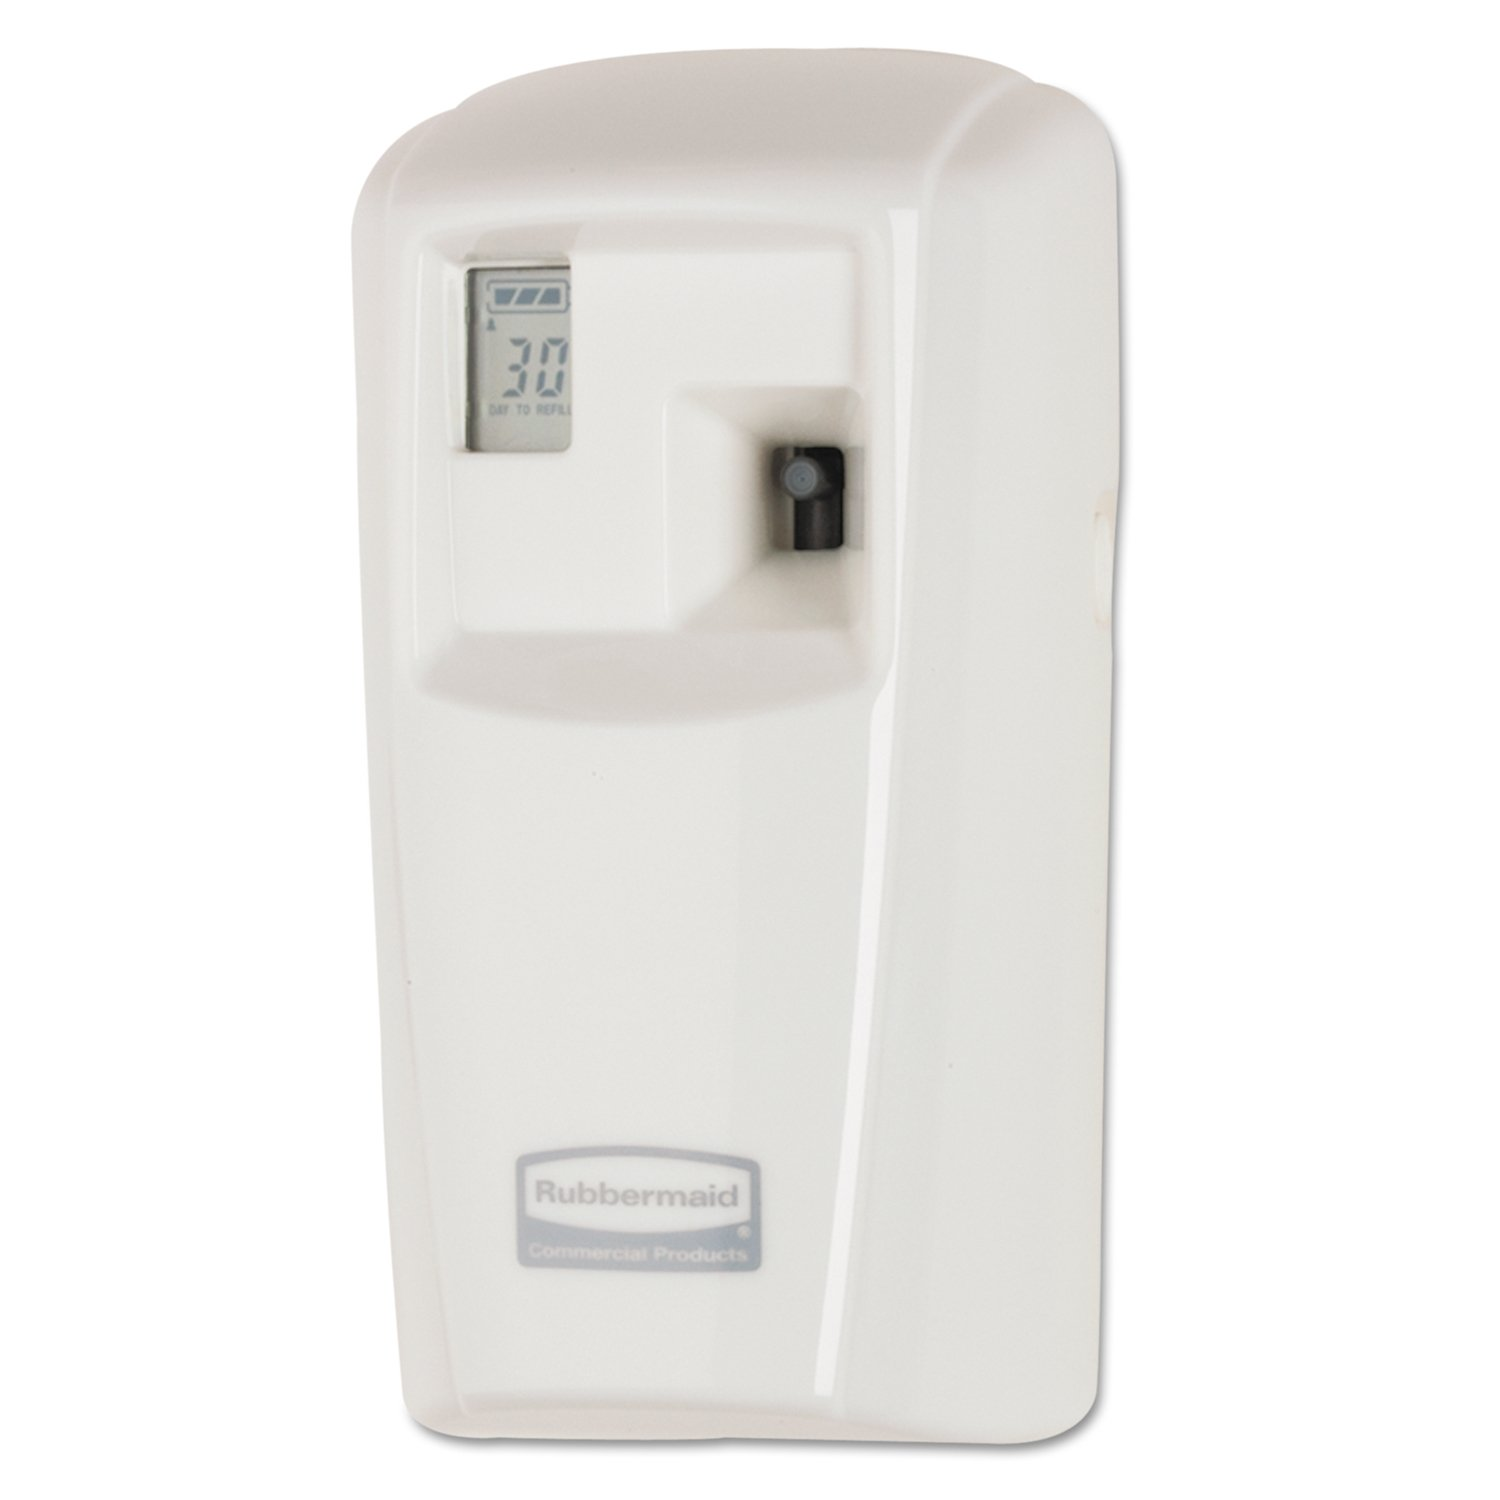 Rubbermaid Commercial Products Microburst Automated Odor-Controlling Aerosol Air Care System, MB3000 Dispenser, White by Rubbermaid Commercial Products